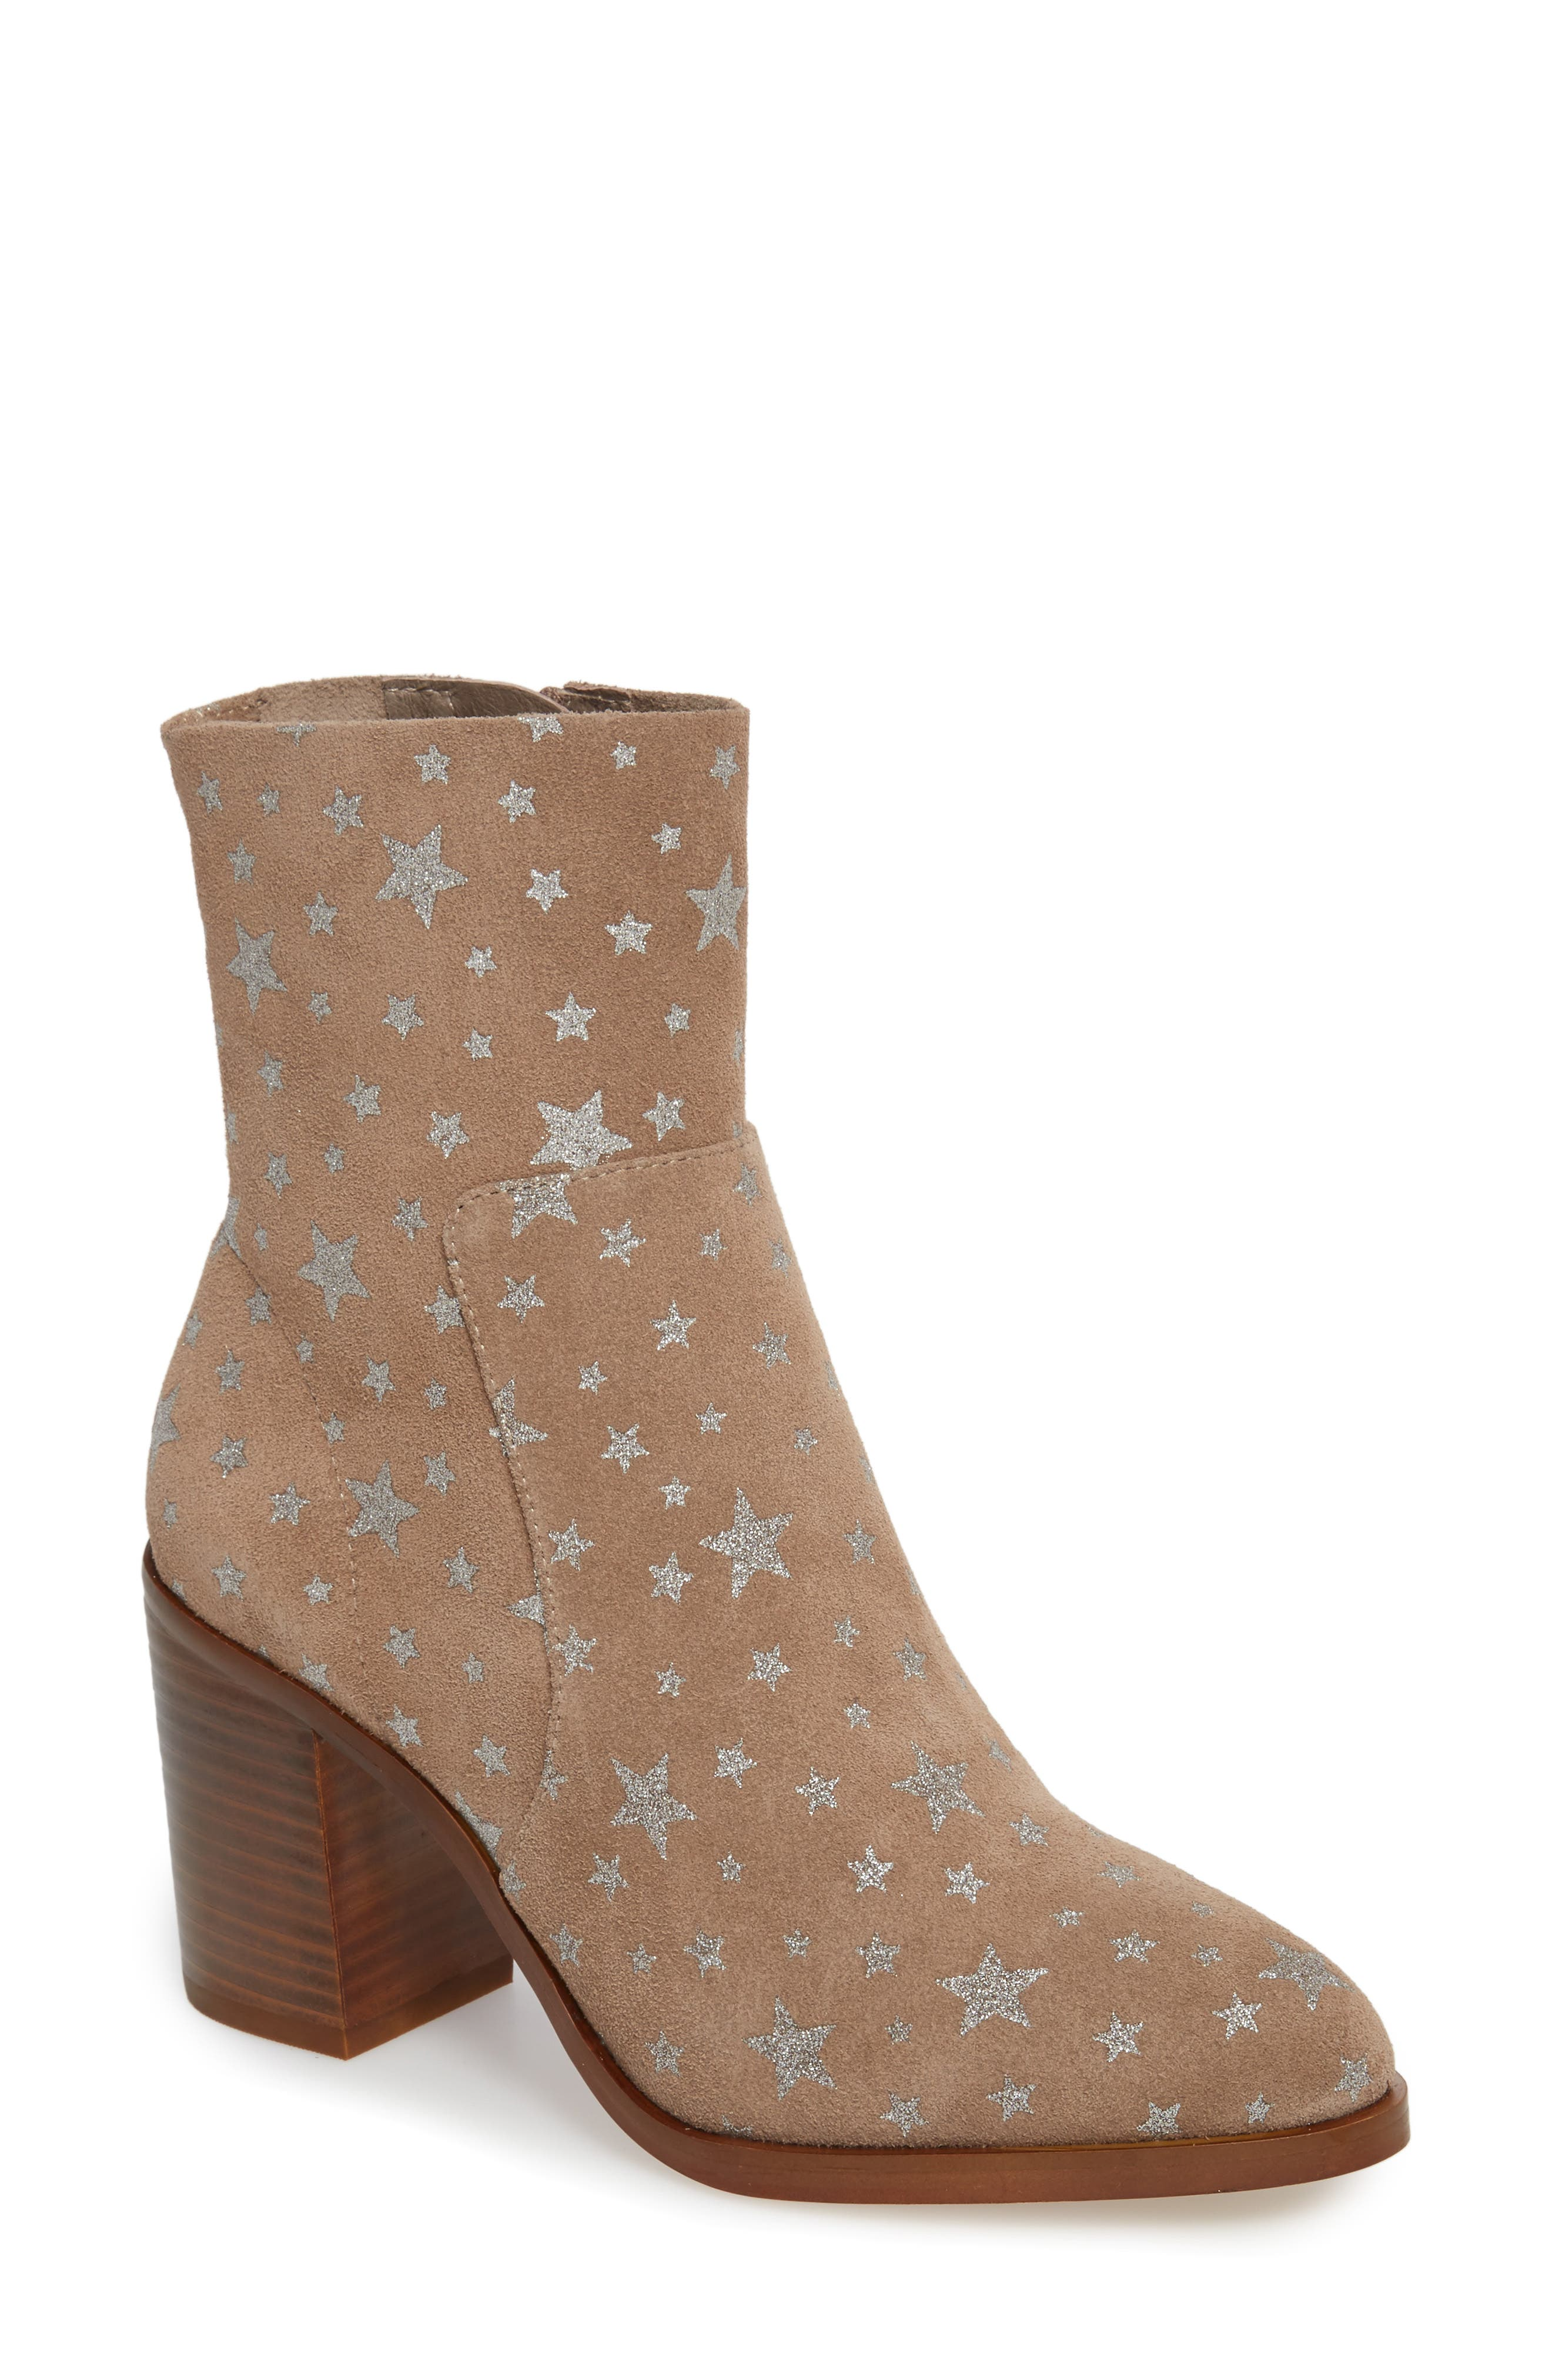 Reward Star Print Bootie,                             Main thumbnail 1, color,                             Taupe Multi Suede